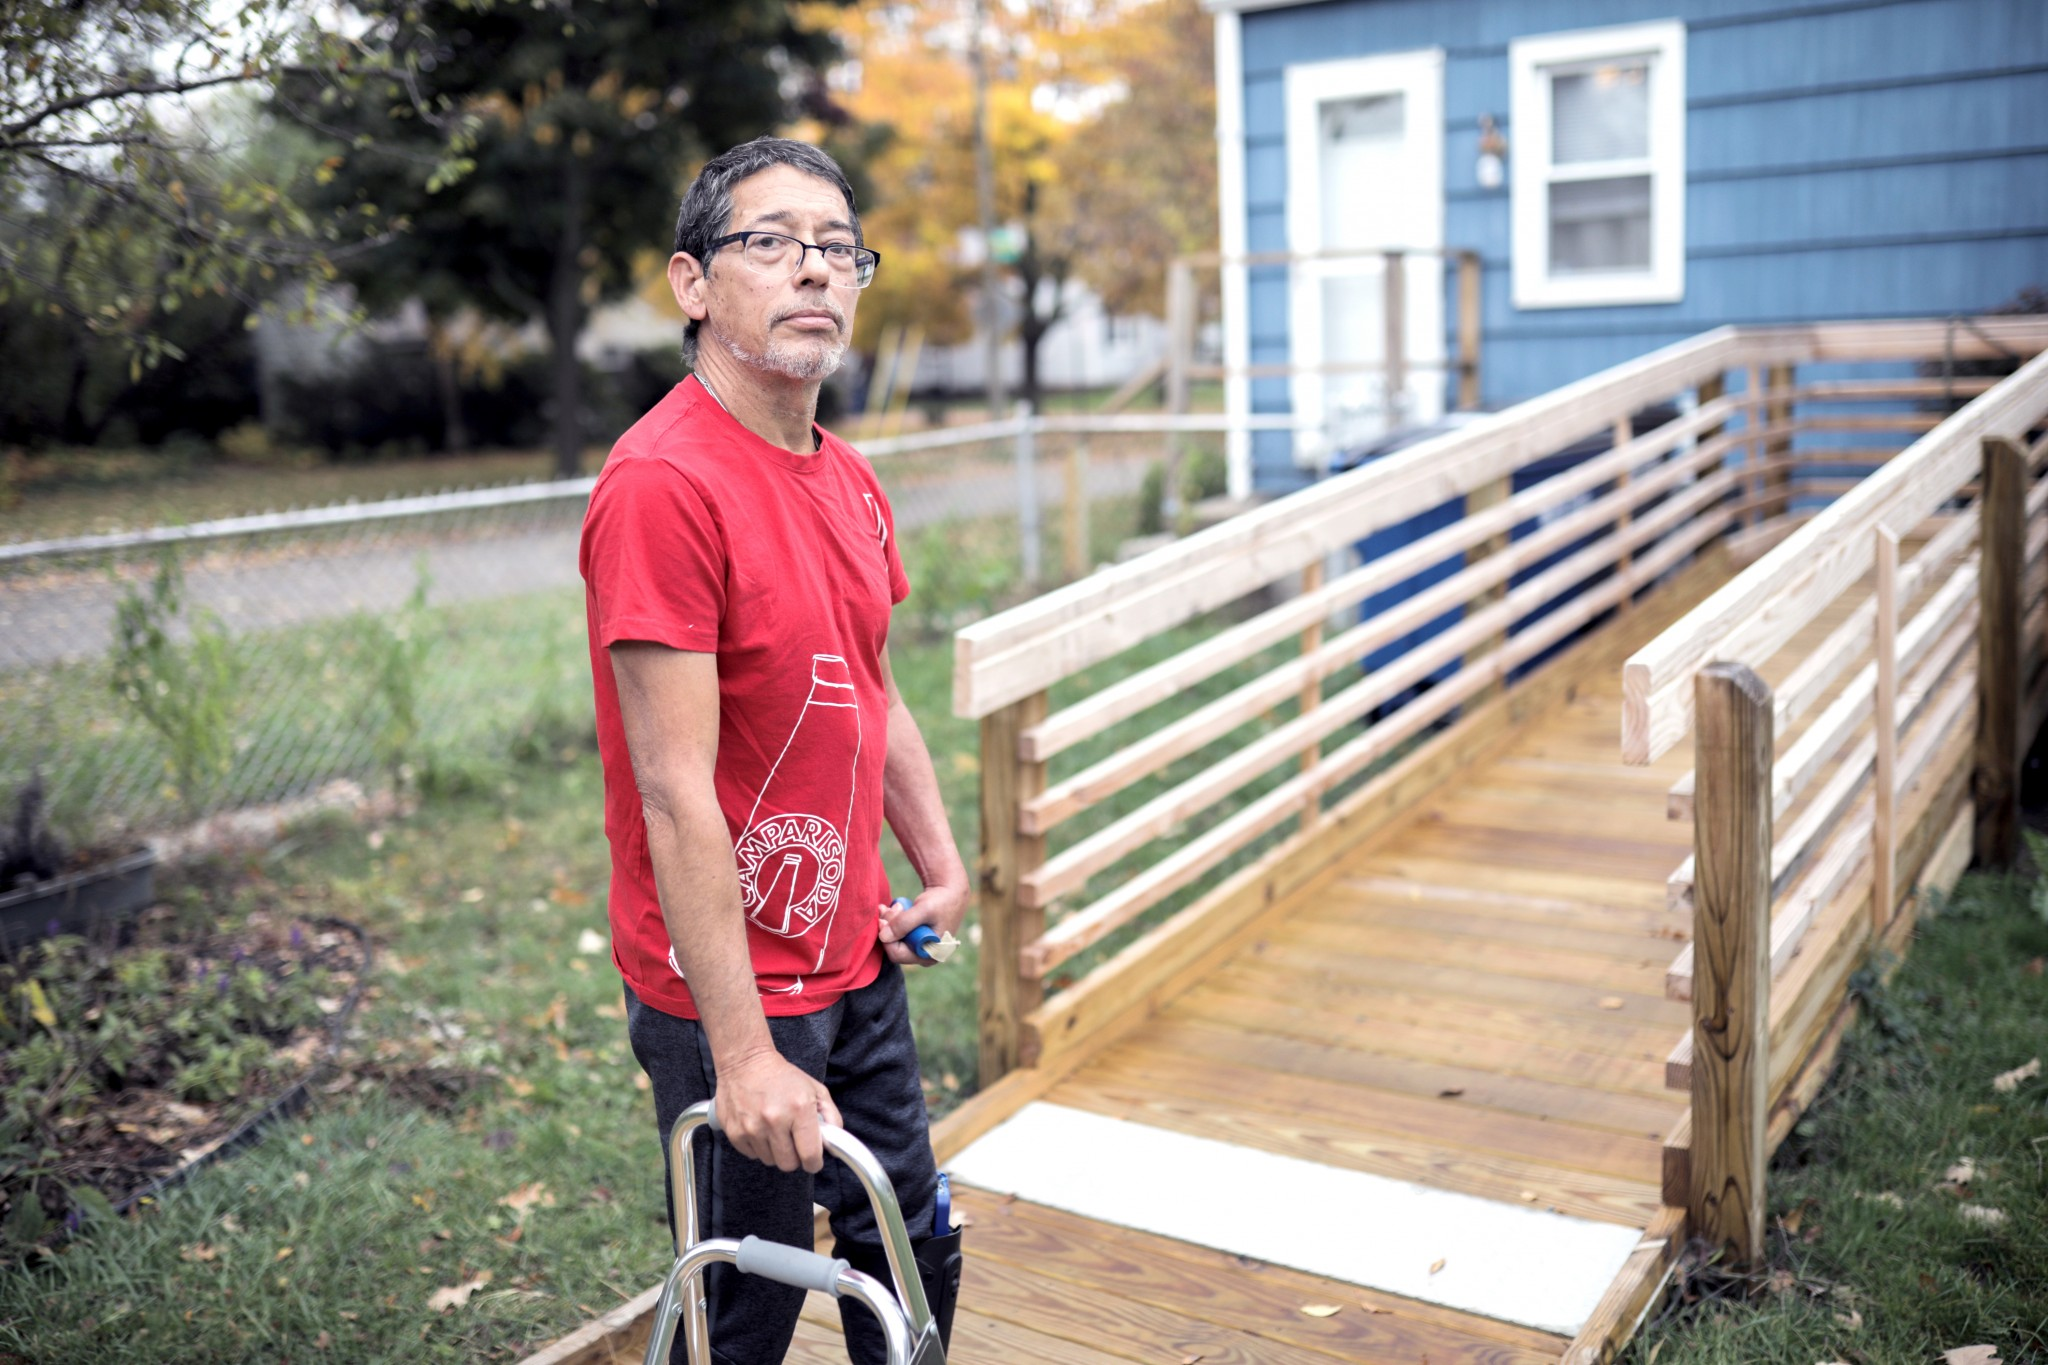 The Ability Center is offering assistance to income-eligible residents of Lucas County seeking to make home modifications to improve safety and accessibility. (Submitted photo)